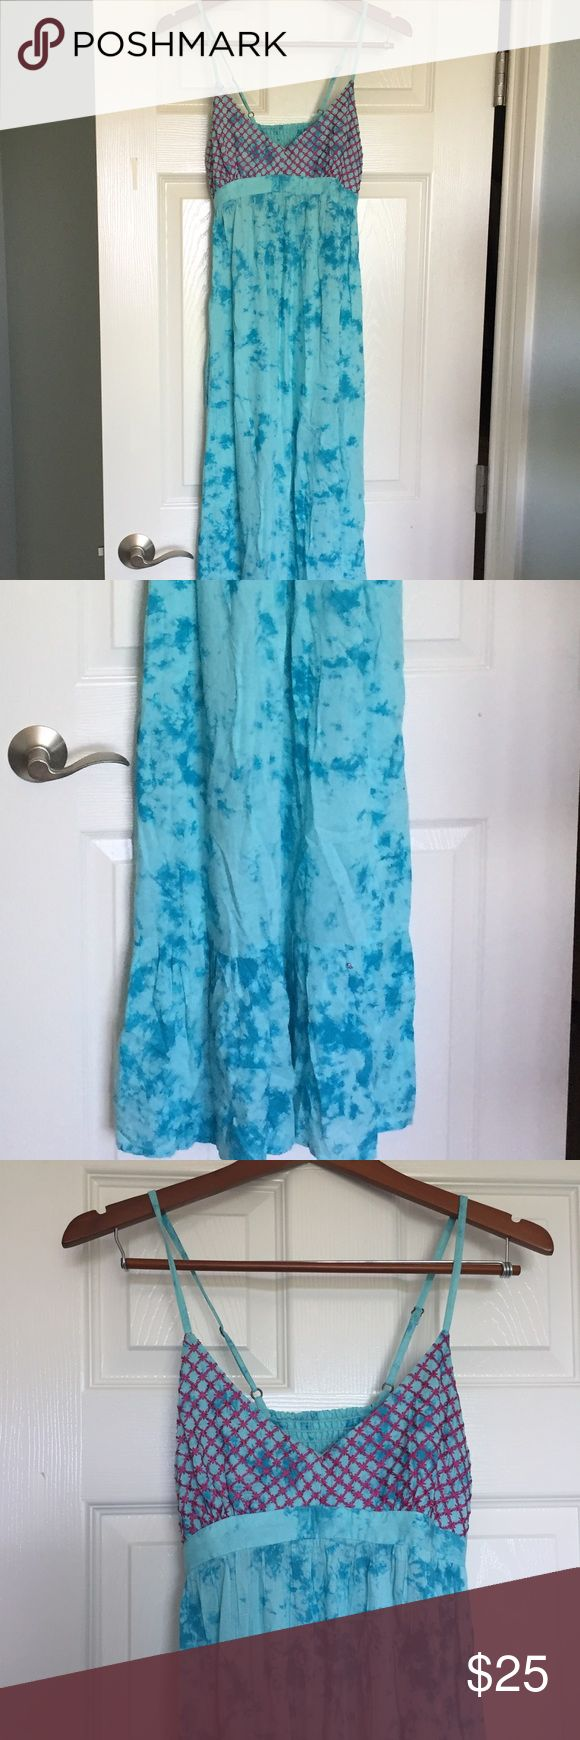 NWOT Rip Curl Turquoise Maxi Dress Like new condition turquoise maxi dress from Rip Curl. Great for vacation! Lightweight but not sheer fabric. Naturally crinkled material with a little ruffle hem. Rip Curl Dresses Maxi